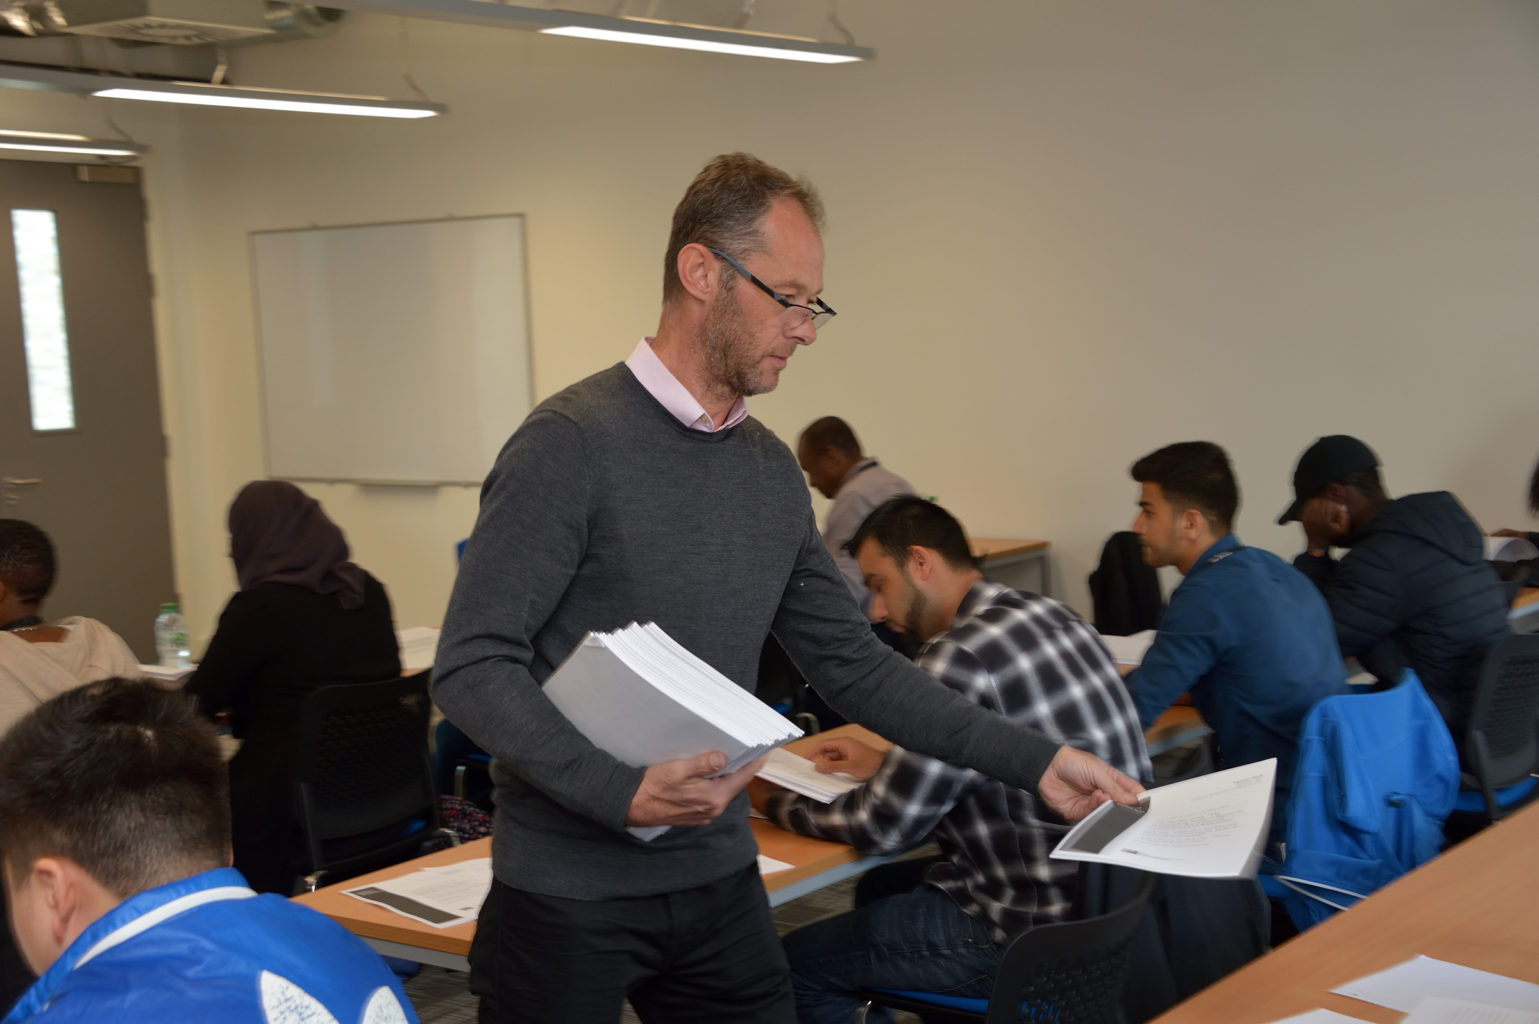 Teaching and Supporting Learning in Higher Education